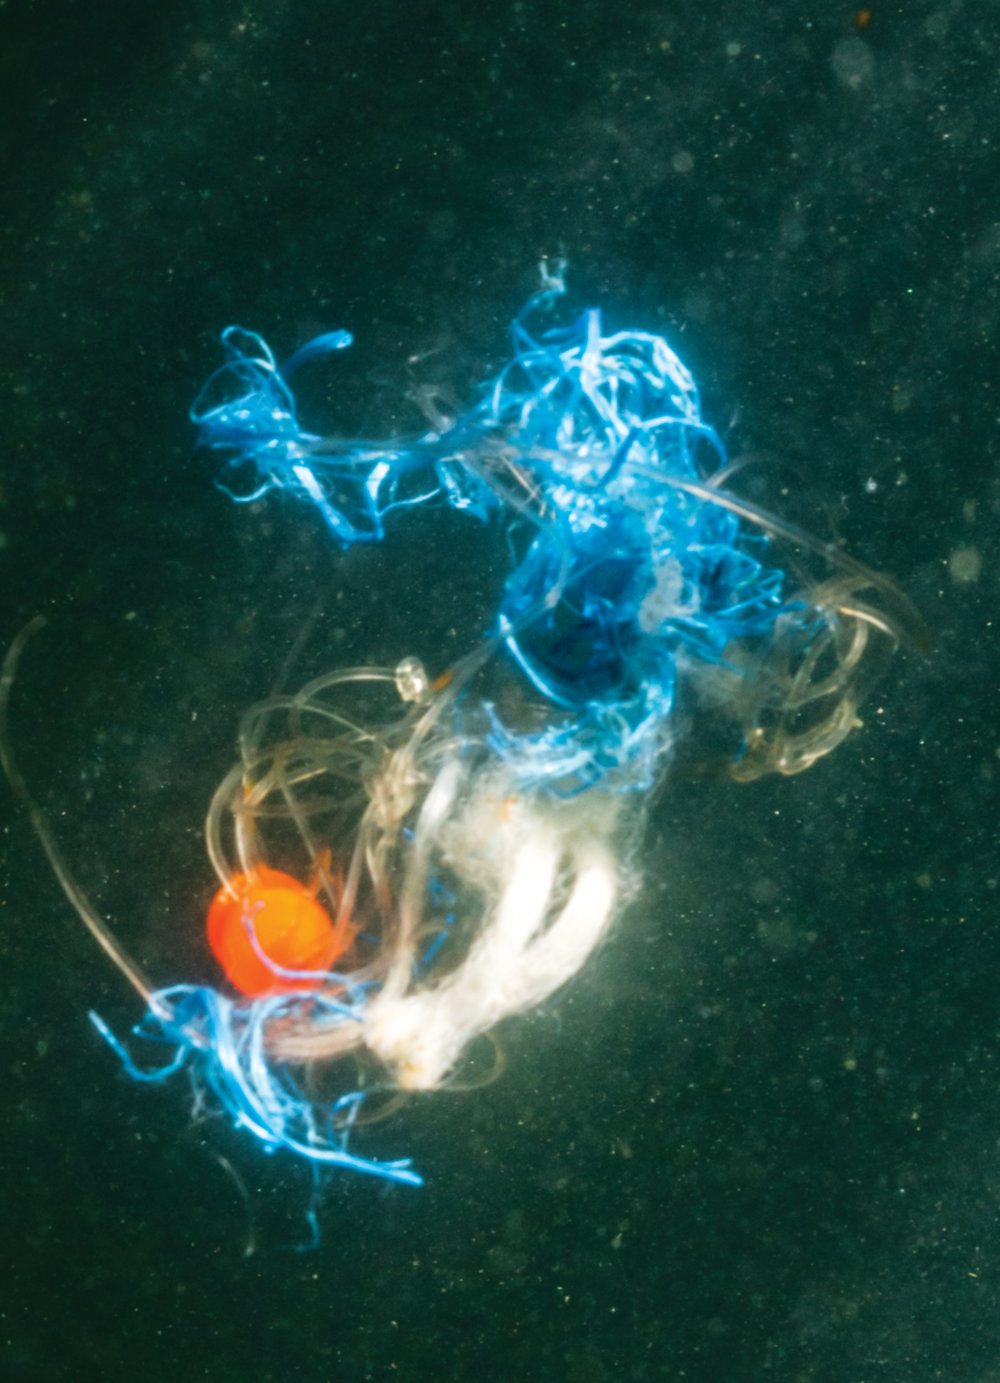 Close-up of a piece of fishing line tangled with other pieces of plastic debris floating below the surface